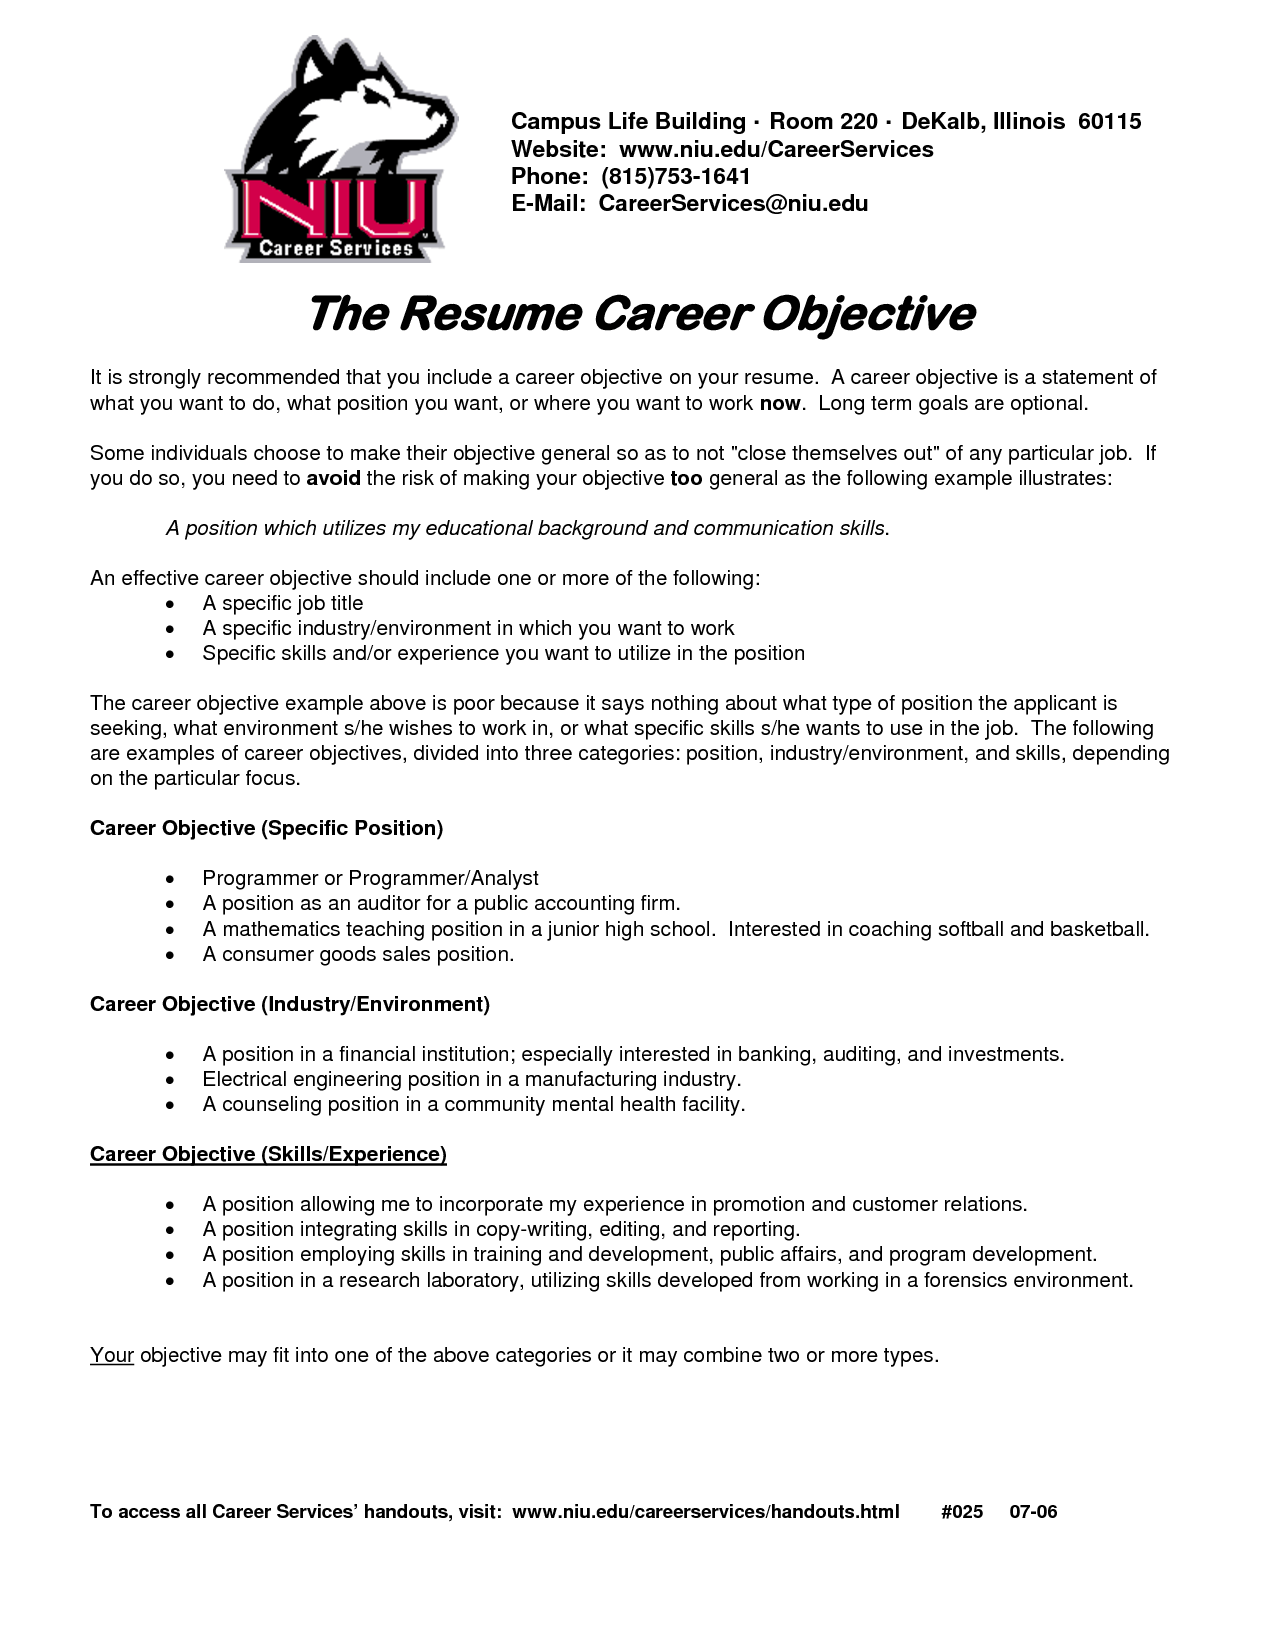 General Objective Statement Resume 2016 Resume Objective Example Samplebusinessresume